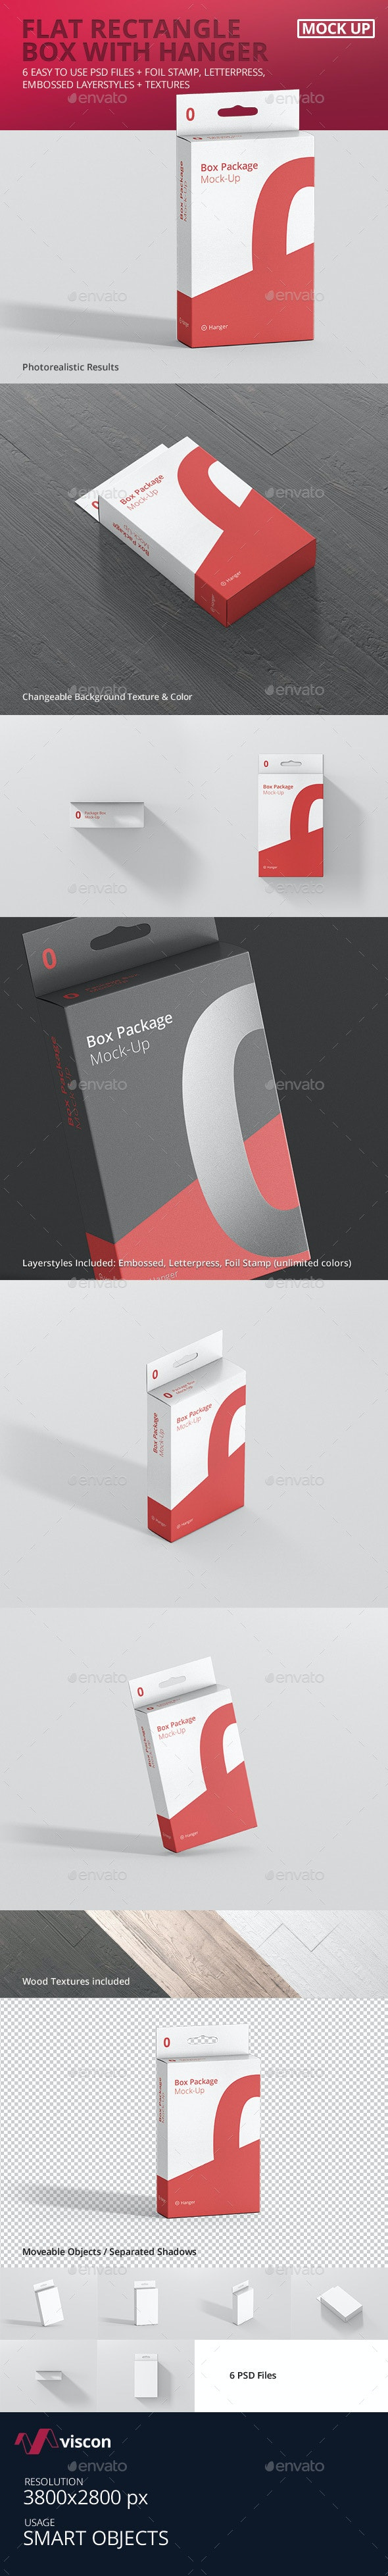 Package Box Mock-Up - Flat Rectangle with Hanger - Miscellaneous Packaging